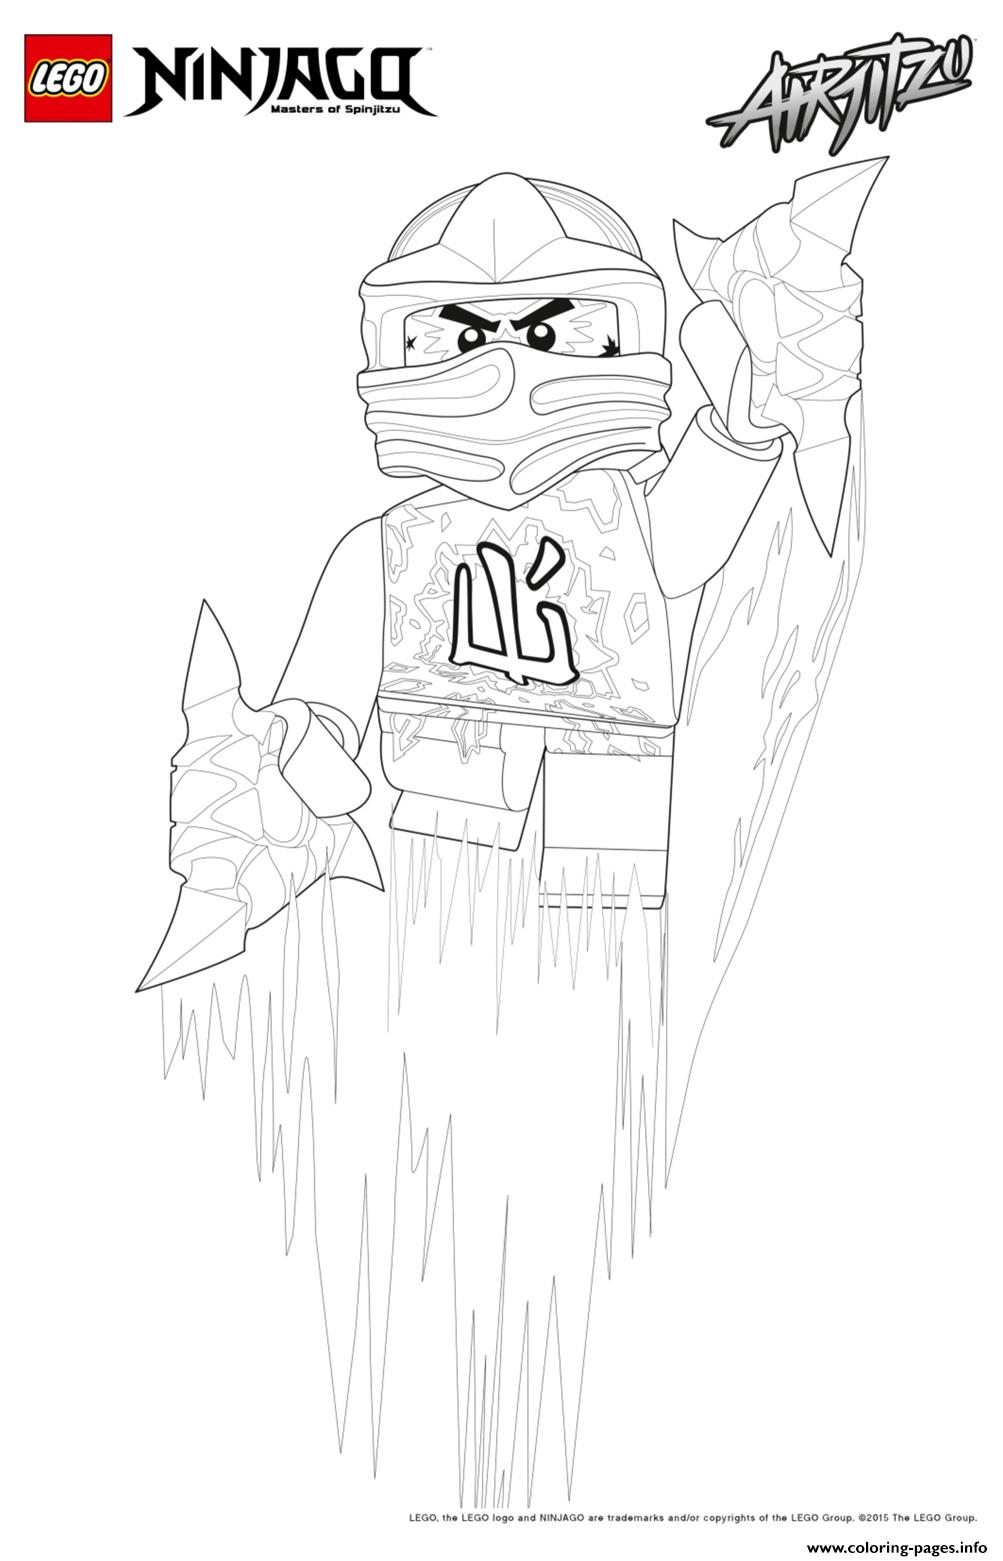 Cole Ninjago Jumped Up coloring pages